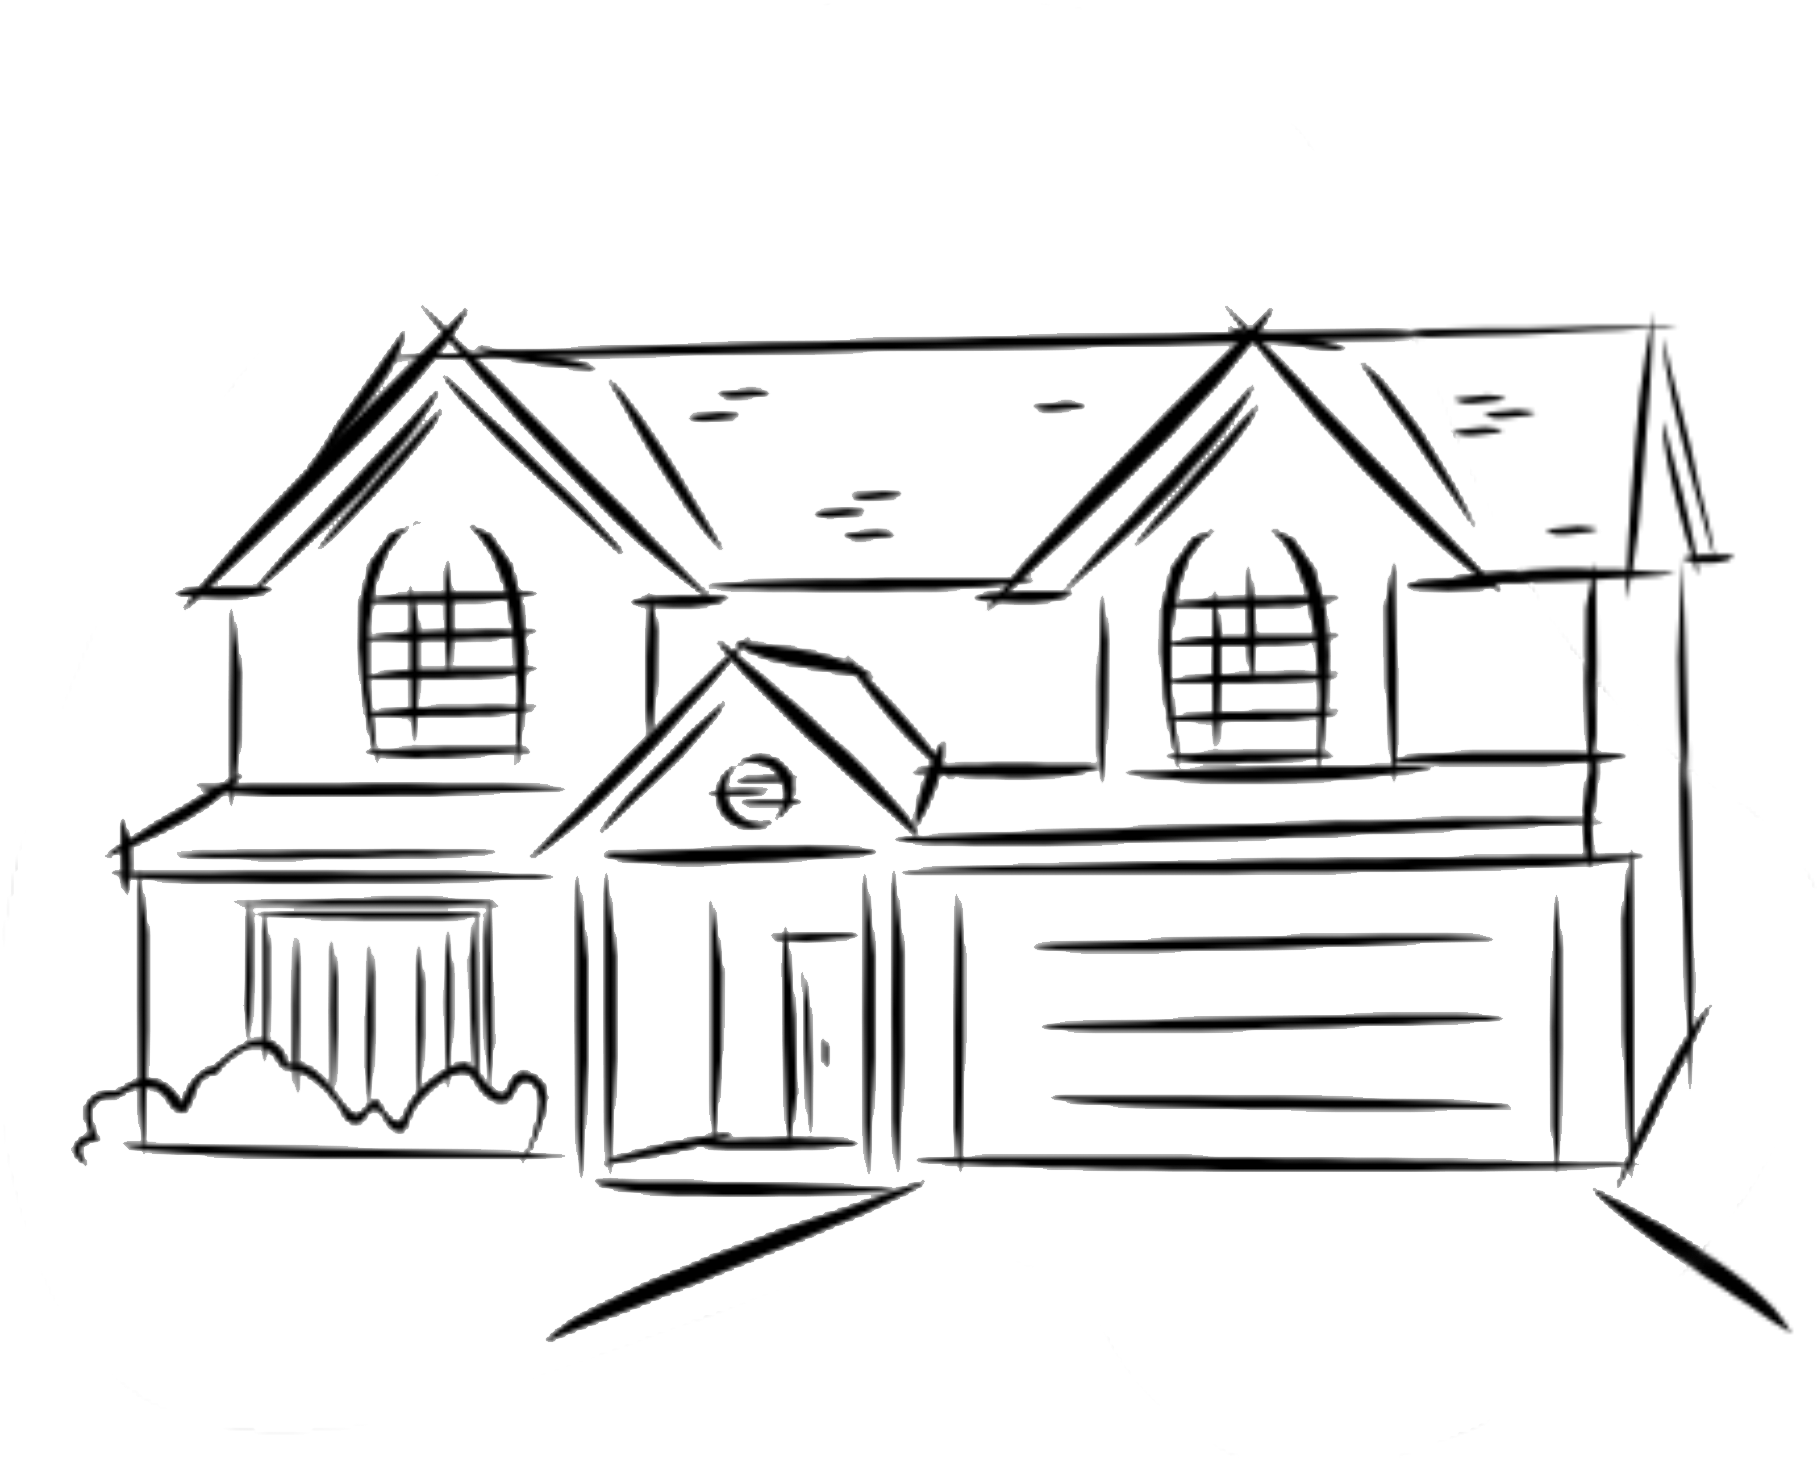 Home sketch png. Line drawing of a